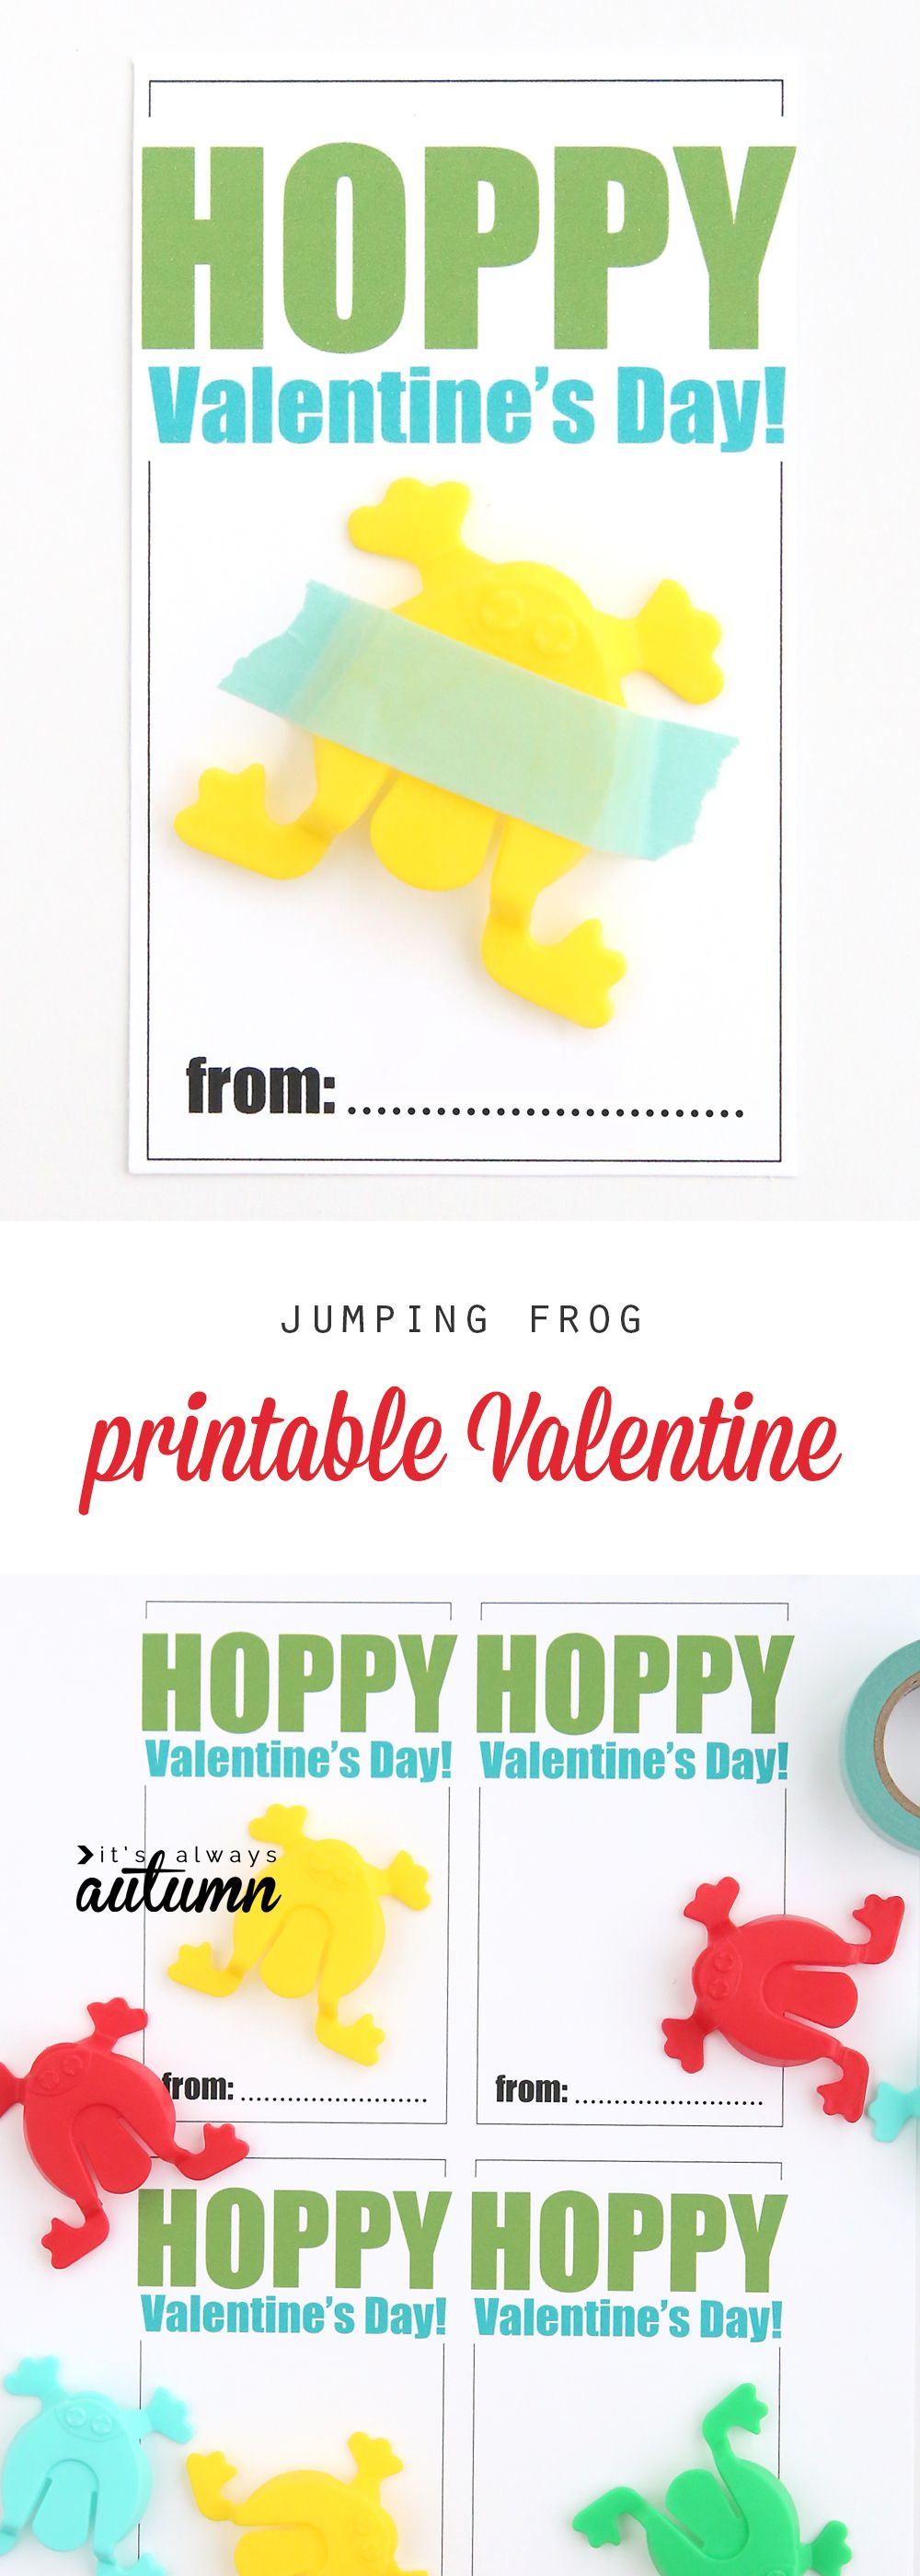 Cute Free Printable Valentineu0027s Day Card With Hopping Frog Toys. Great Non  Candy Valentine Idea